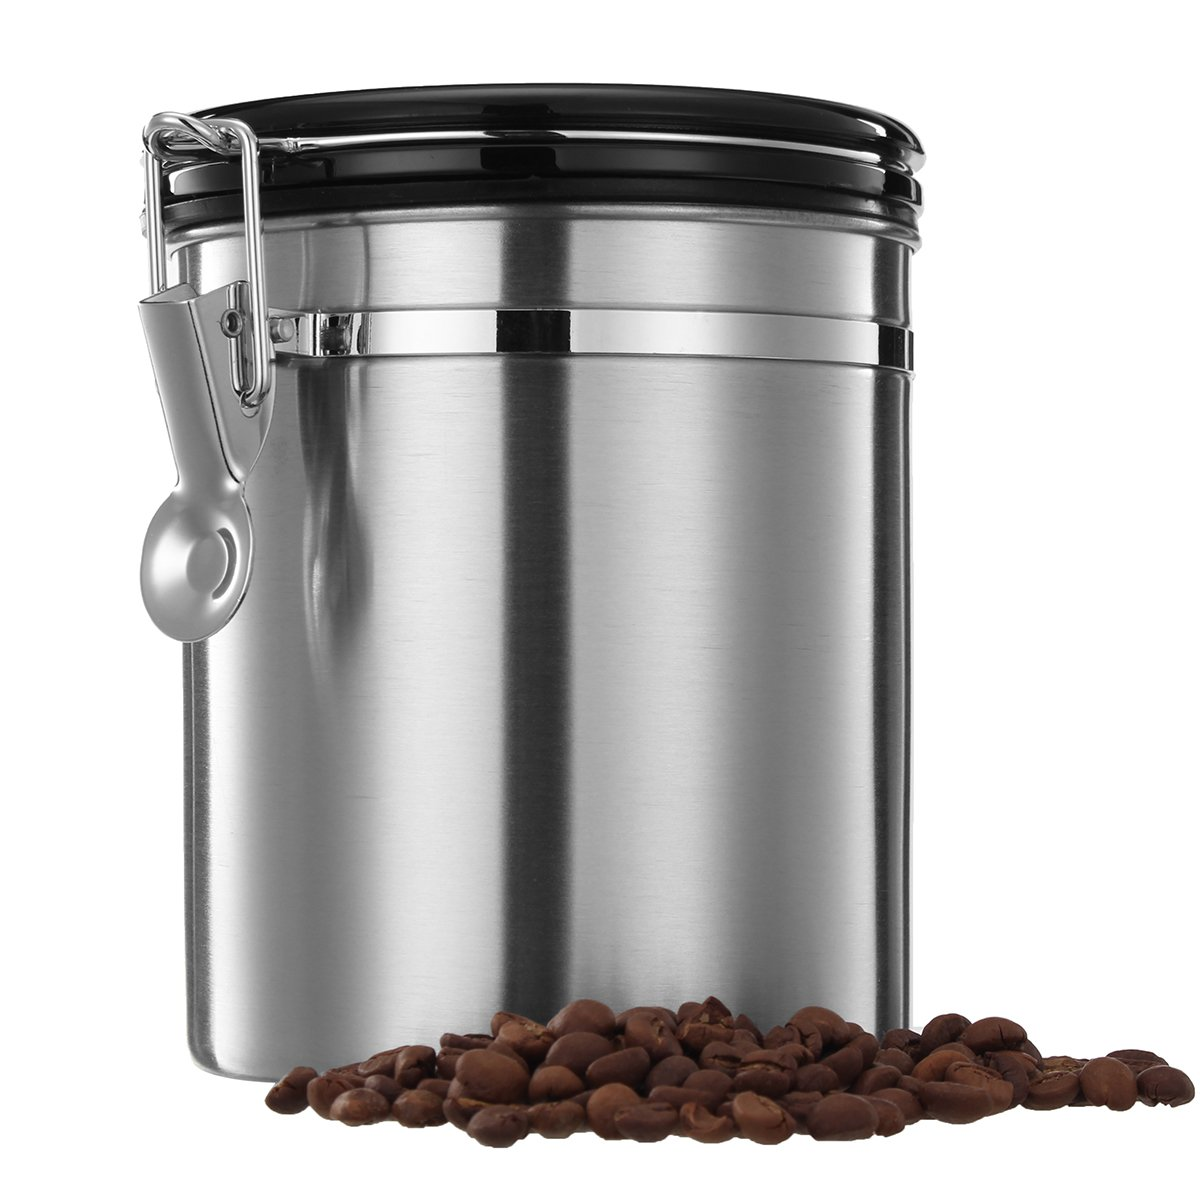 Vivona Hardware & Accessories 1.5L Silver Stainless Steel Sealed Coffee Bean Tea Storage Canister Kitchen Storage Container